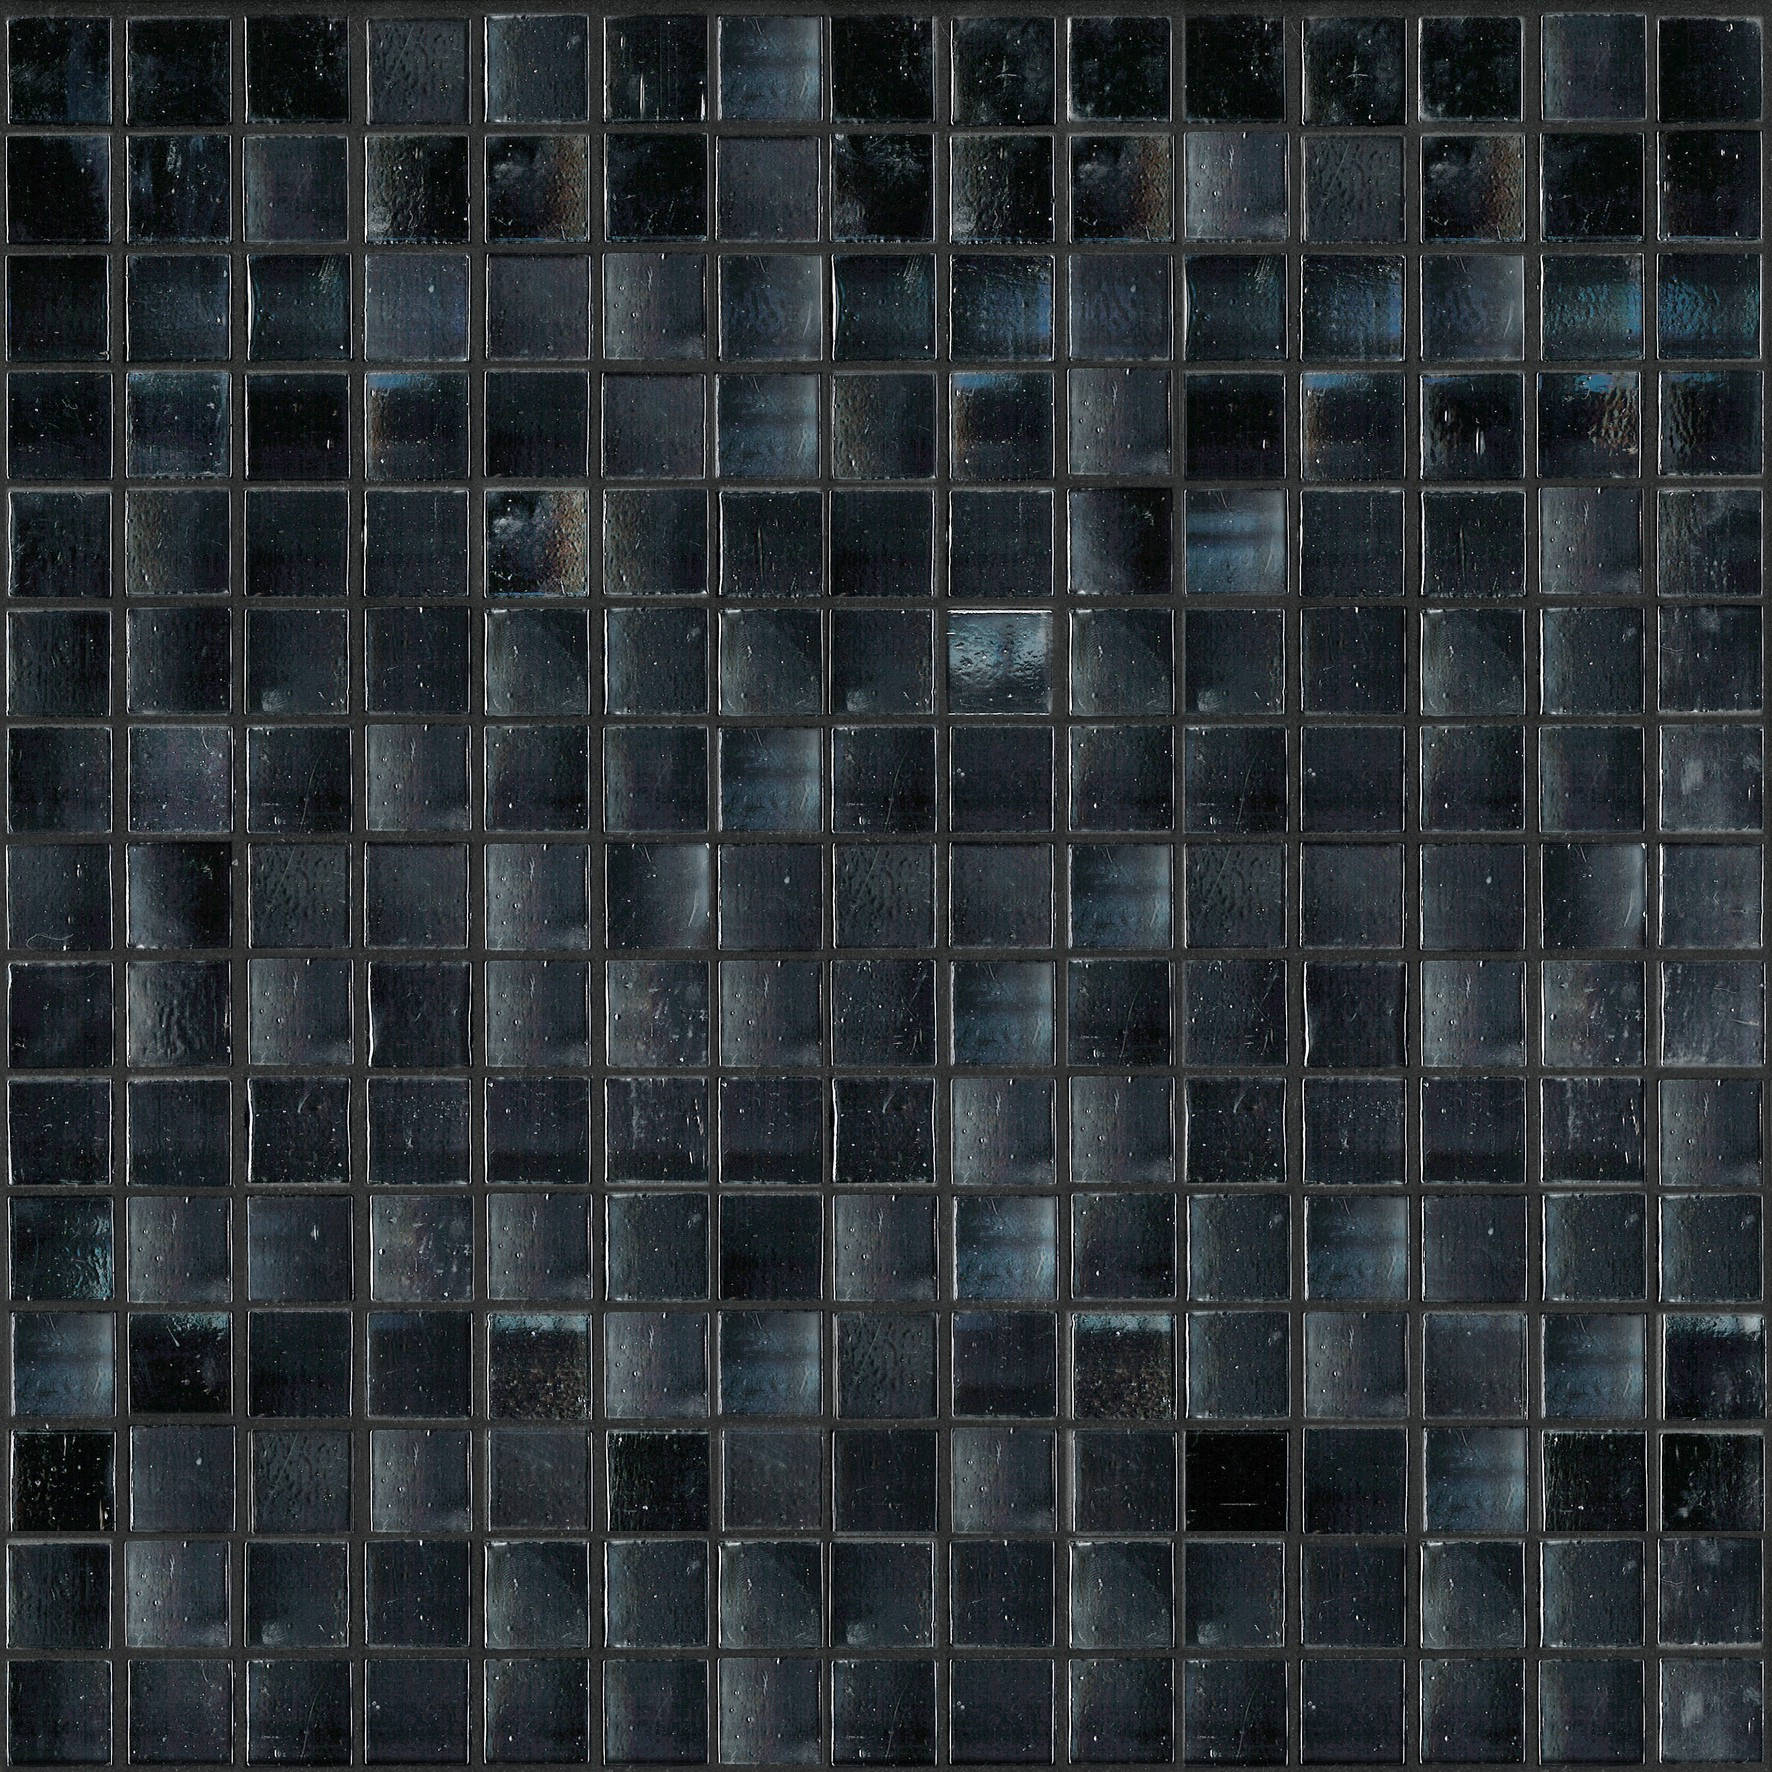 "Bisazza Gloss GL 13 Glass Mosaic Tile 20mm - 3/4"", 1 sheet"